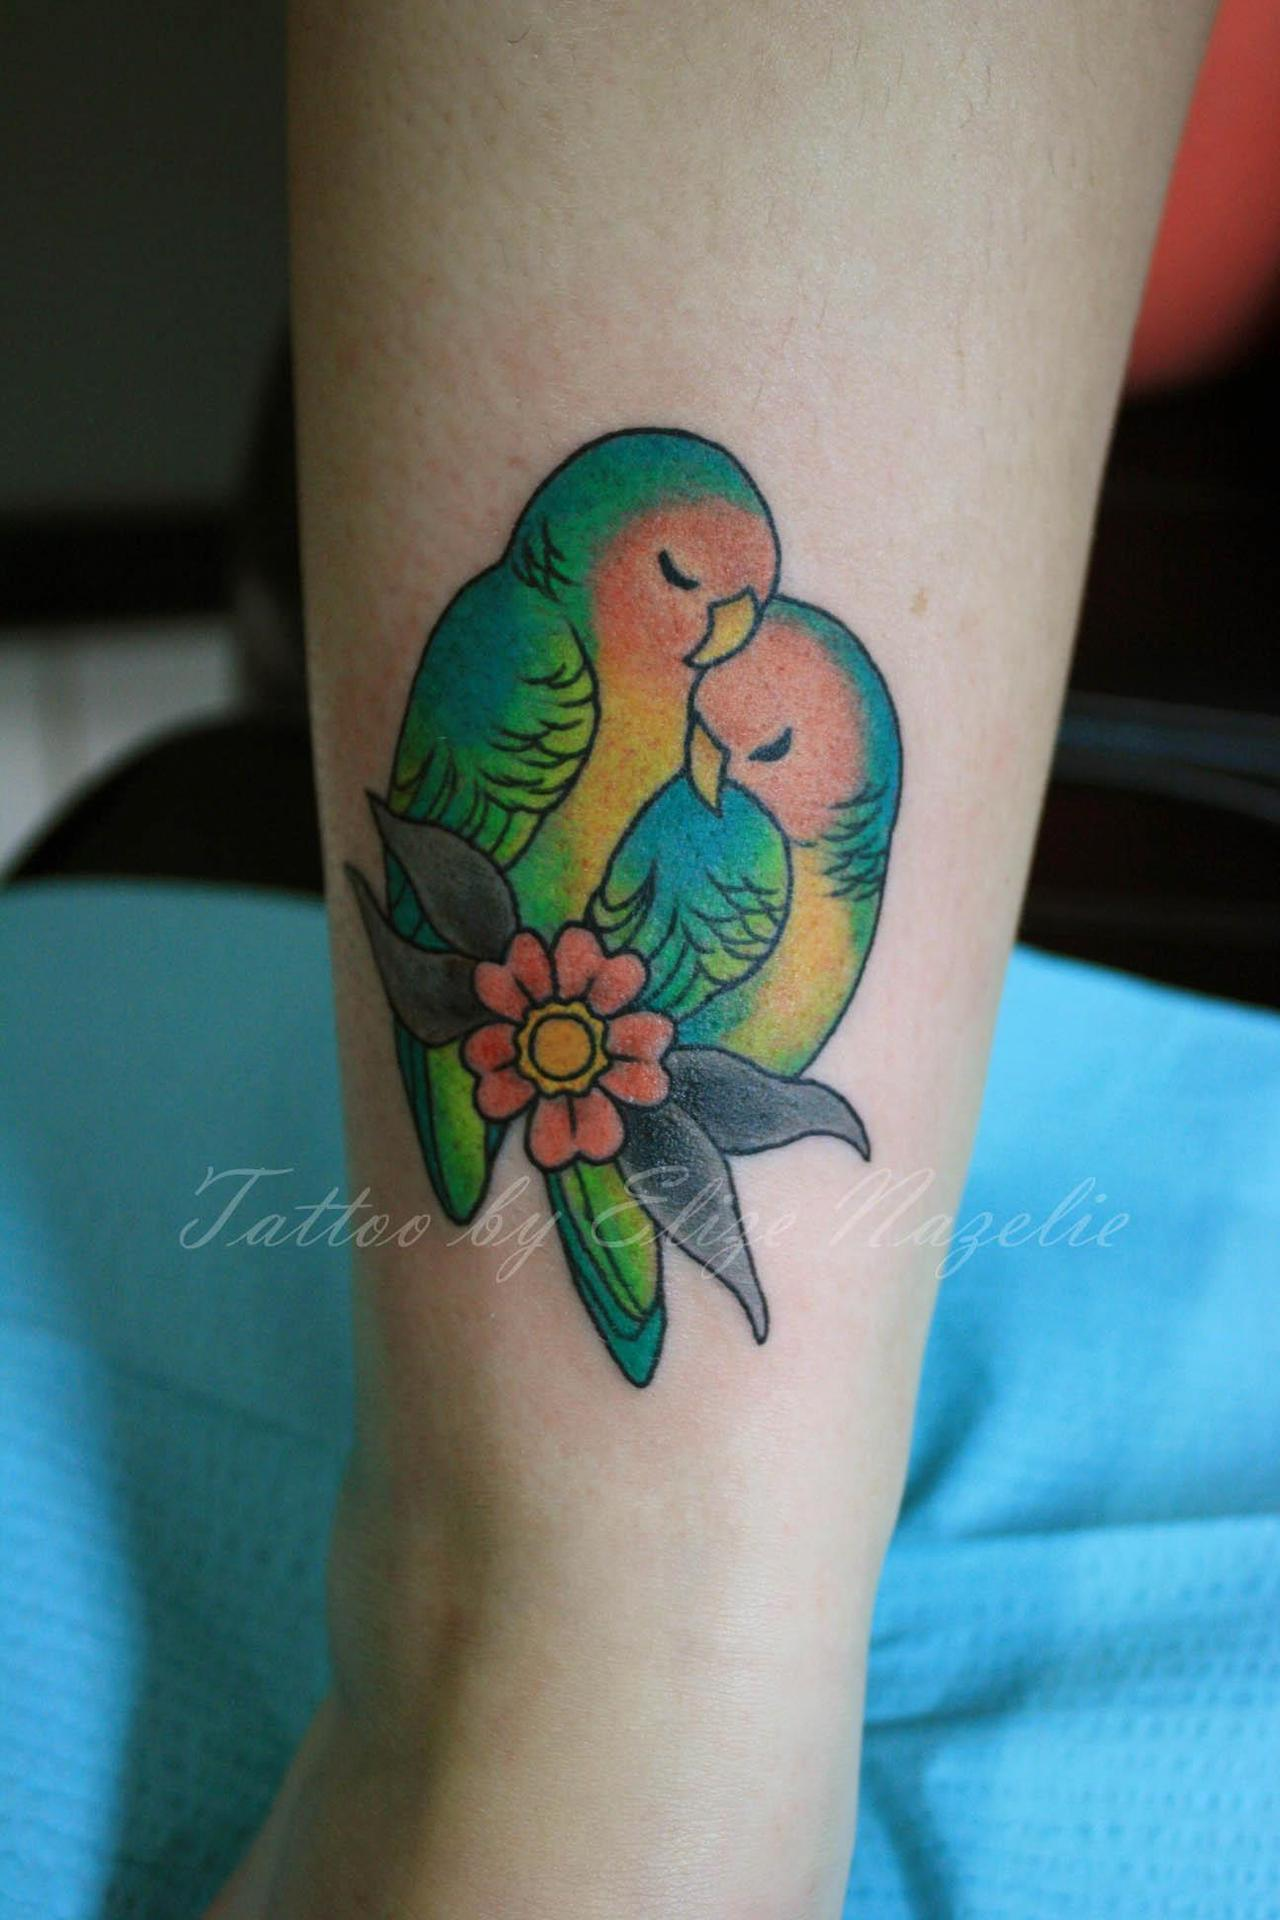 fuckyeahtattoos:  My peach-faced lovebirds <3 Done by the wonderfully talented Elize Nazelie at Empire Tattoo Studios in Somerville, MA. This was my first tattoo; I have two others being drawn up by her currently that I'm getting done in the next several months. I really love the extra detail she puts into it by adding the little eyelashes on the smaller female bird. Elize is incredibly sweet, down to earth and talented. I highly recommend her to anyone in Massachusetts or New England areas (or even further if you're willing to travel). My fiance and I have gotten each other a tattoo for each year  of our relationship. I paid for his first tattoo (for his birthday last November), he paid for this one (my first tattoo) and I'll be helping him pay for his second one, again, for his birthday. While I didn't get the Lovebirds specifically for him, I will admit that it does give me the warm fuzzies when I look at it. It'll be two years together in April; while we've had our ups and downs, I couldn't be more lucky to have found my soul mate in such a wonderful individual. He's my lovebird, so to speak <3